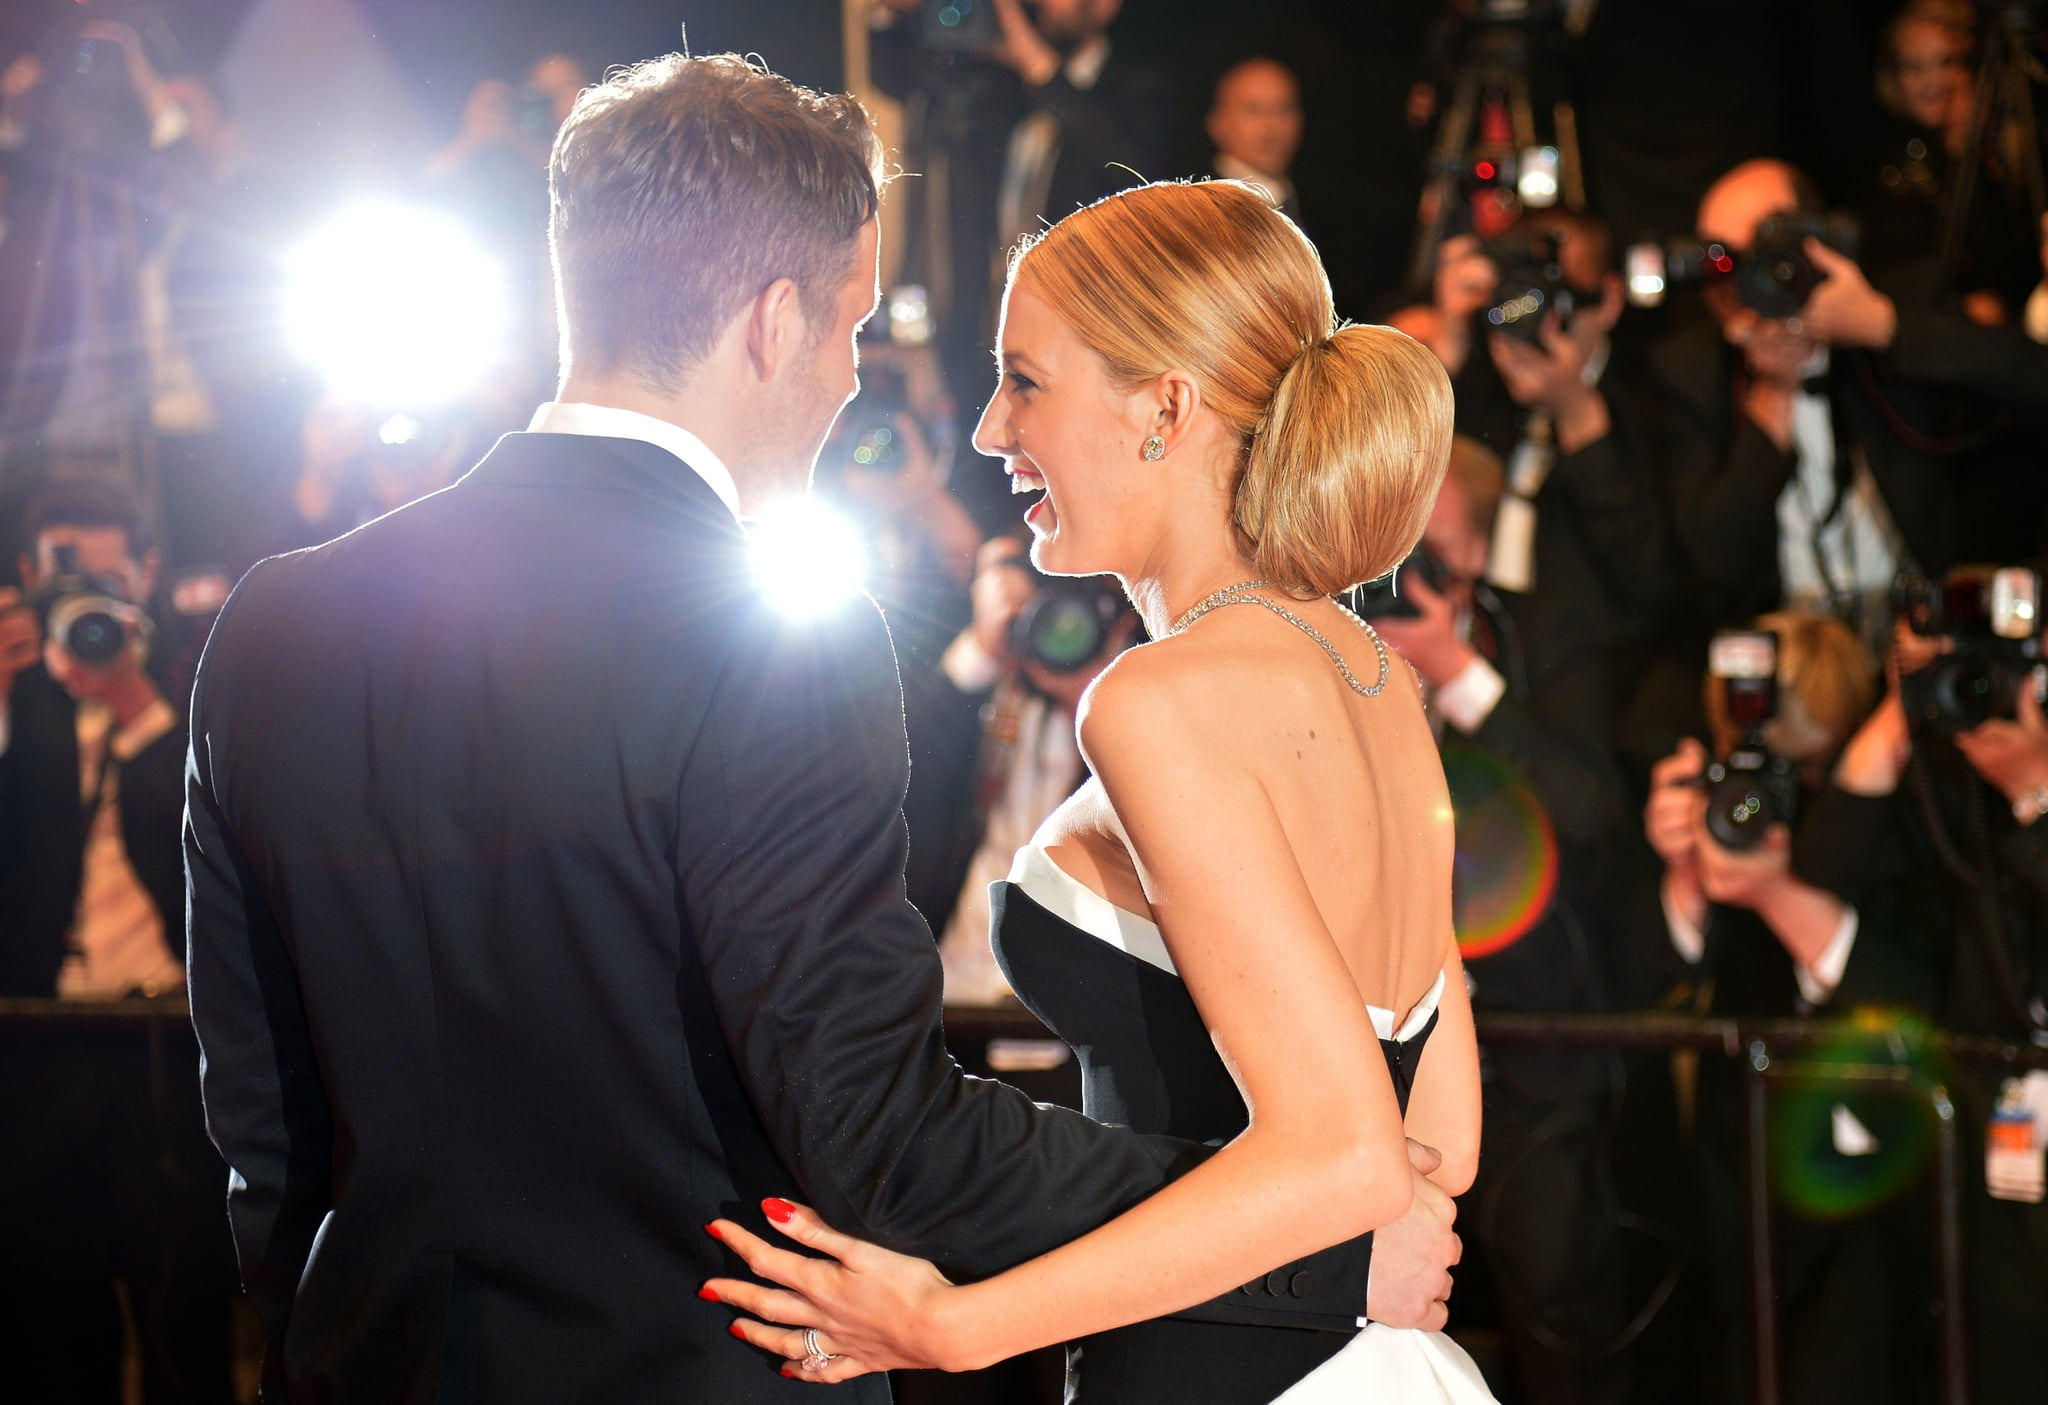 Blake Lively and Ryan Reynolds shared a laugh at The Captive's premiere.